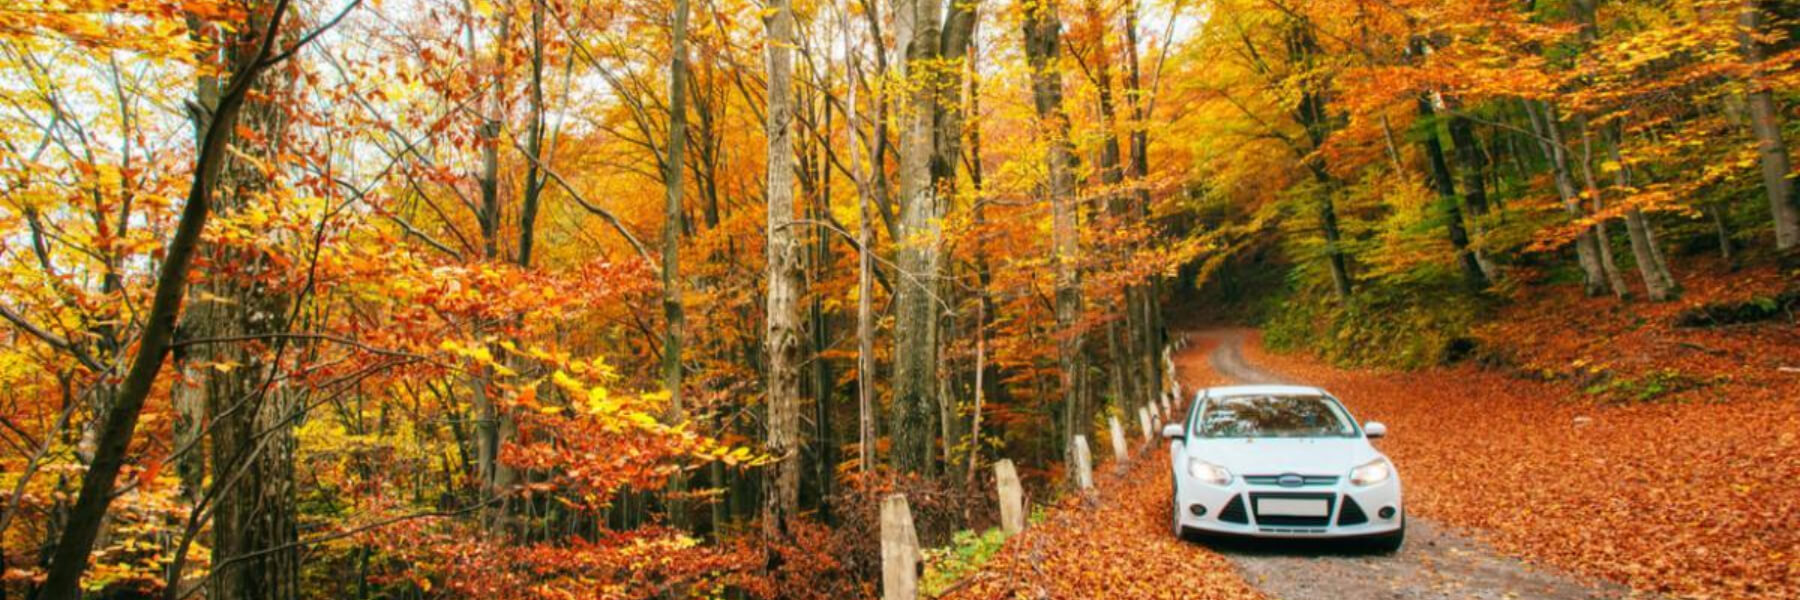 White car on a forest trail in fall leaves during autumn.